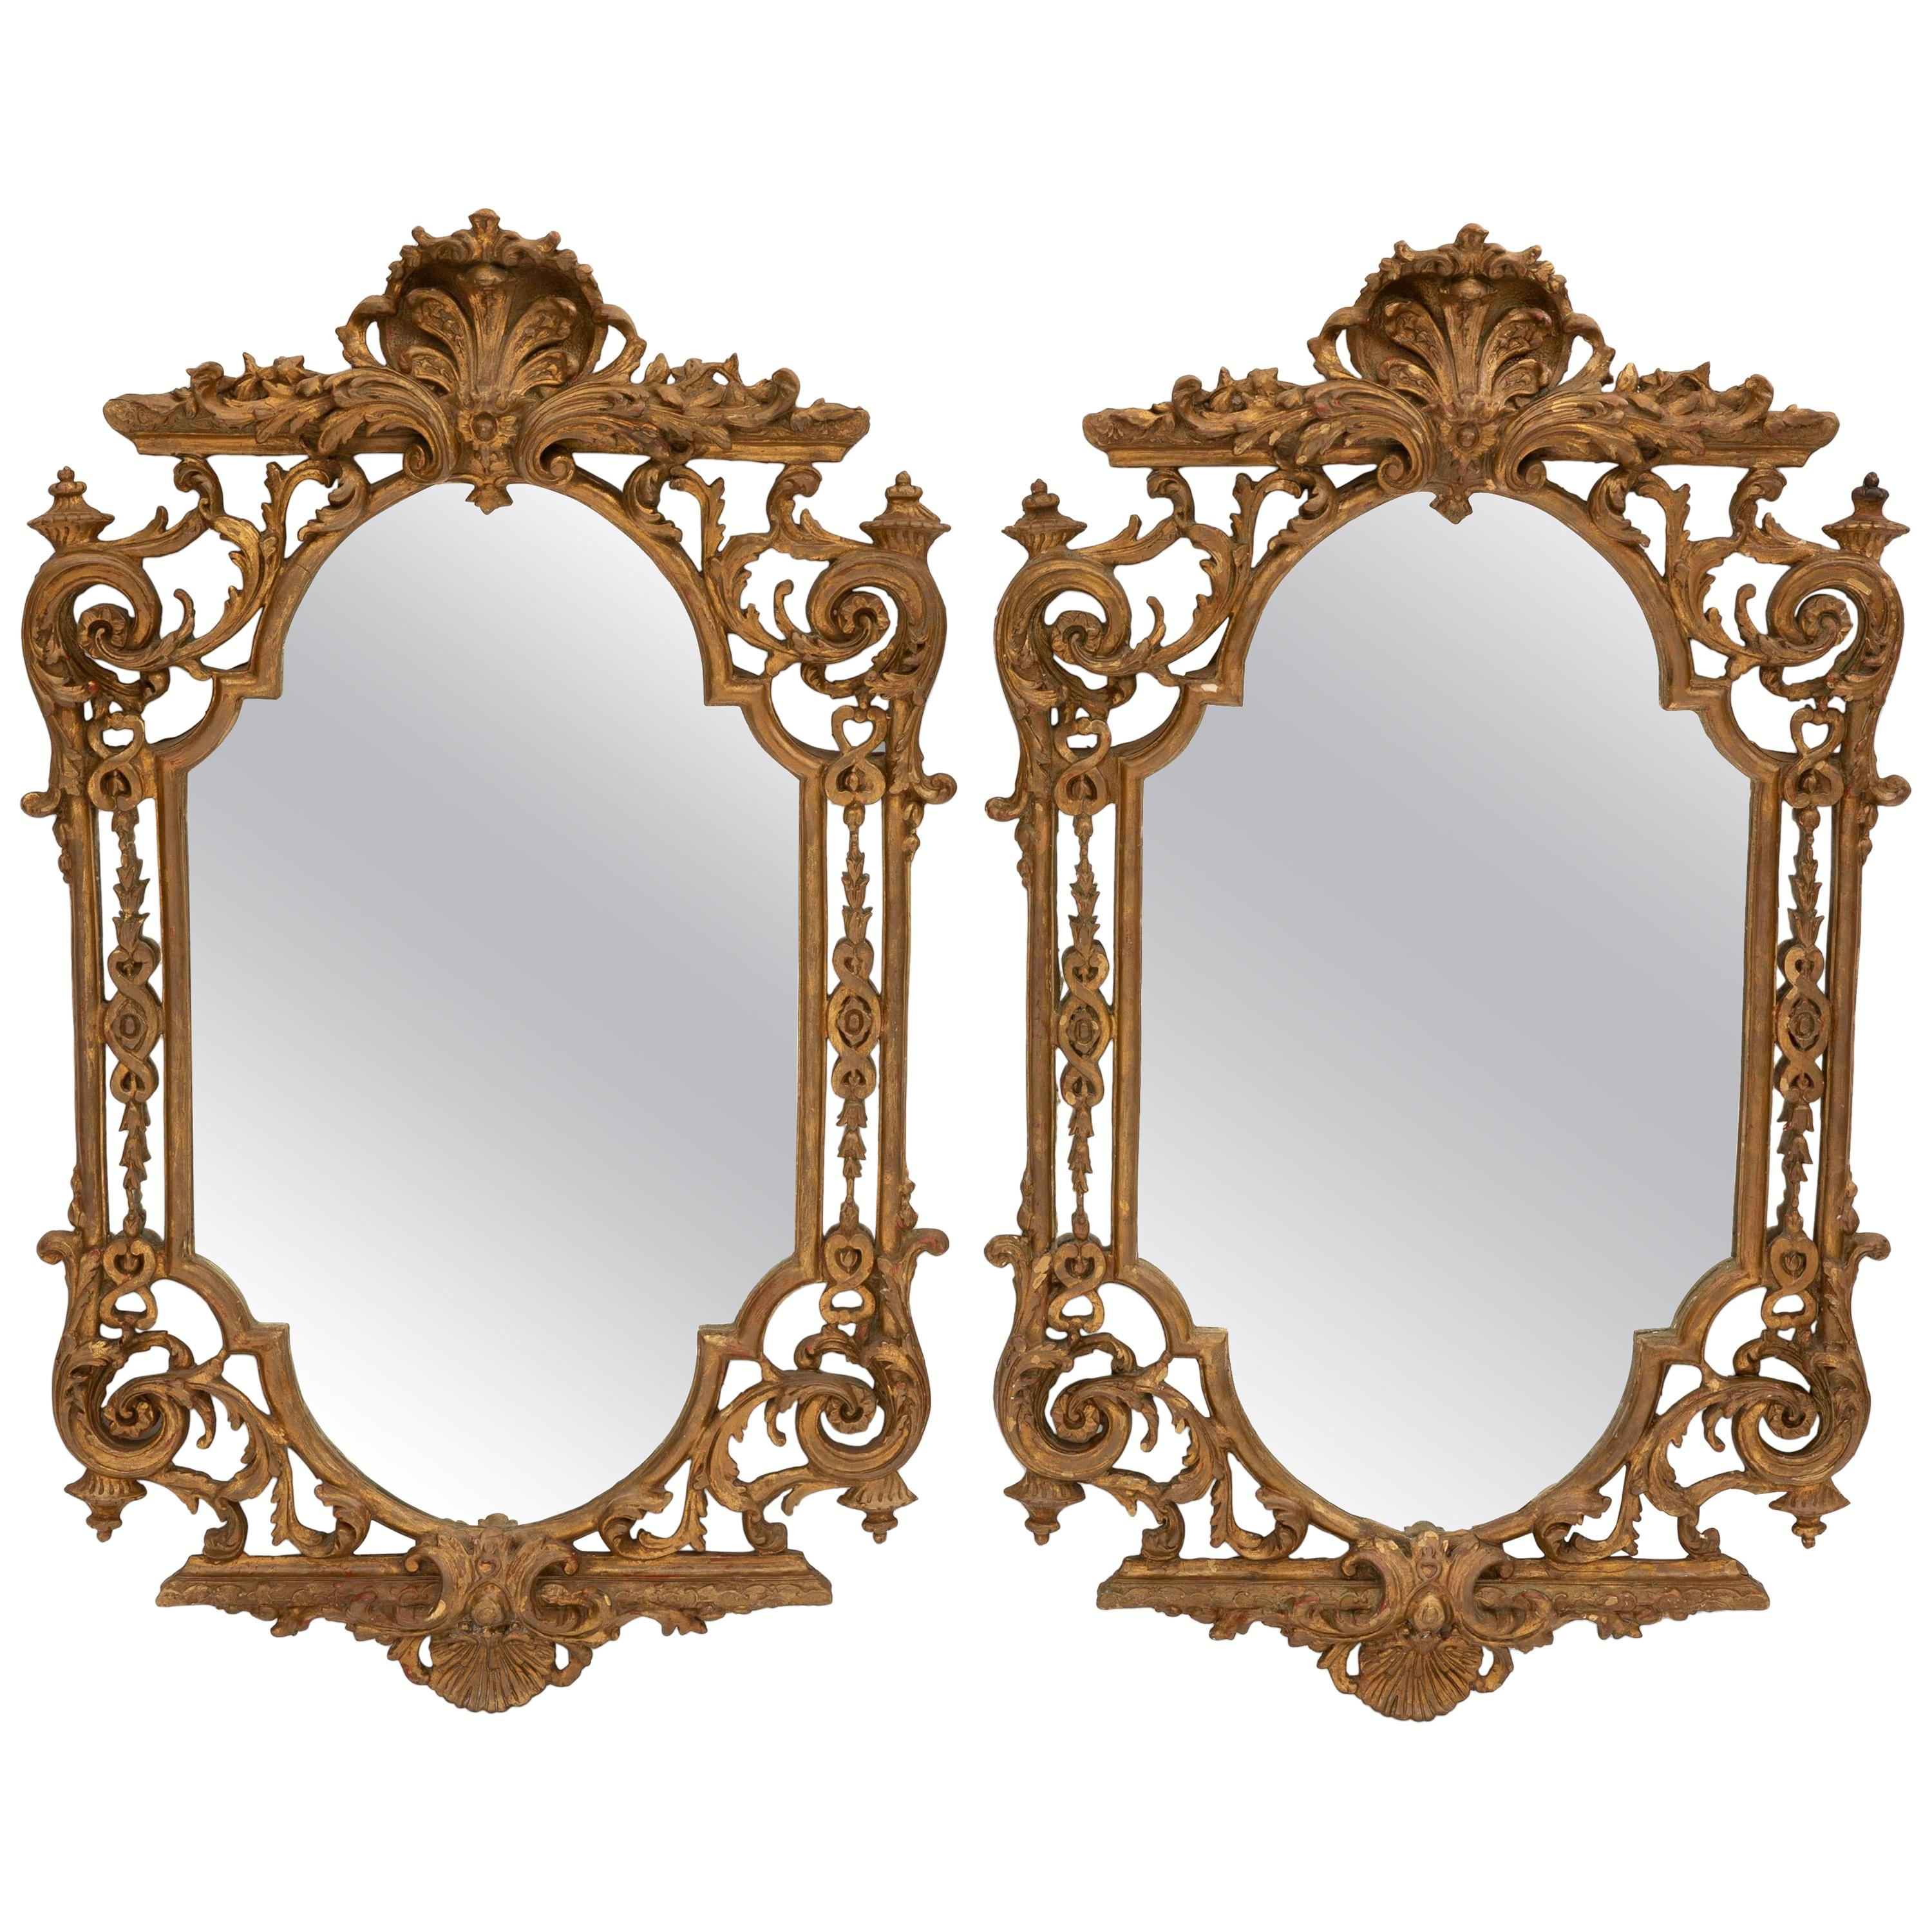 Pair of Italian Baroque Style Carved Giltwood Mirrors